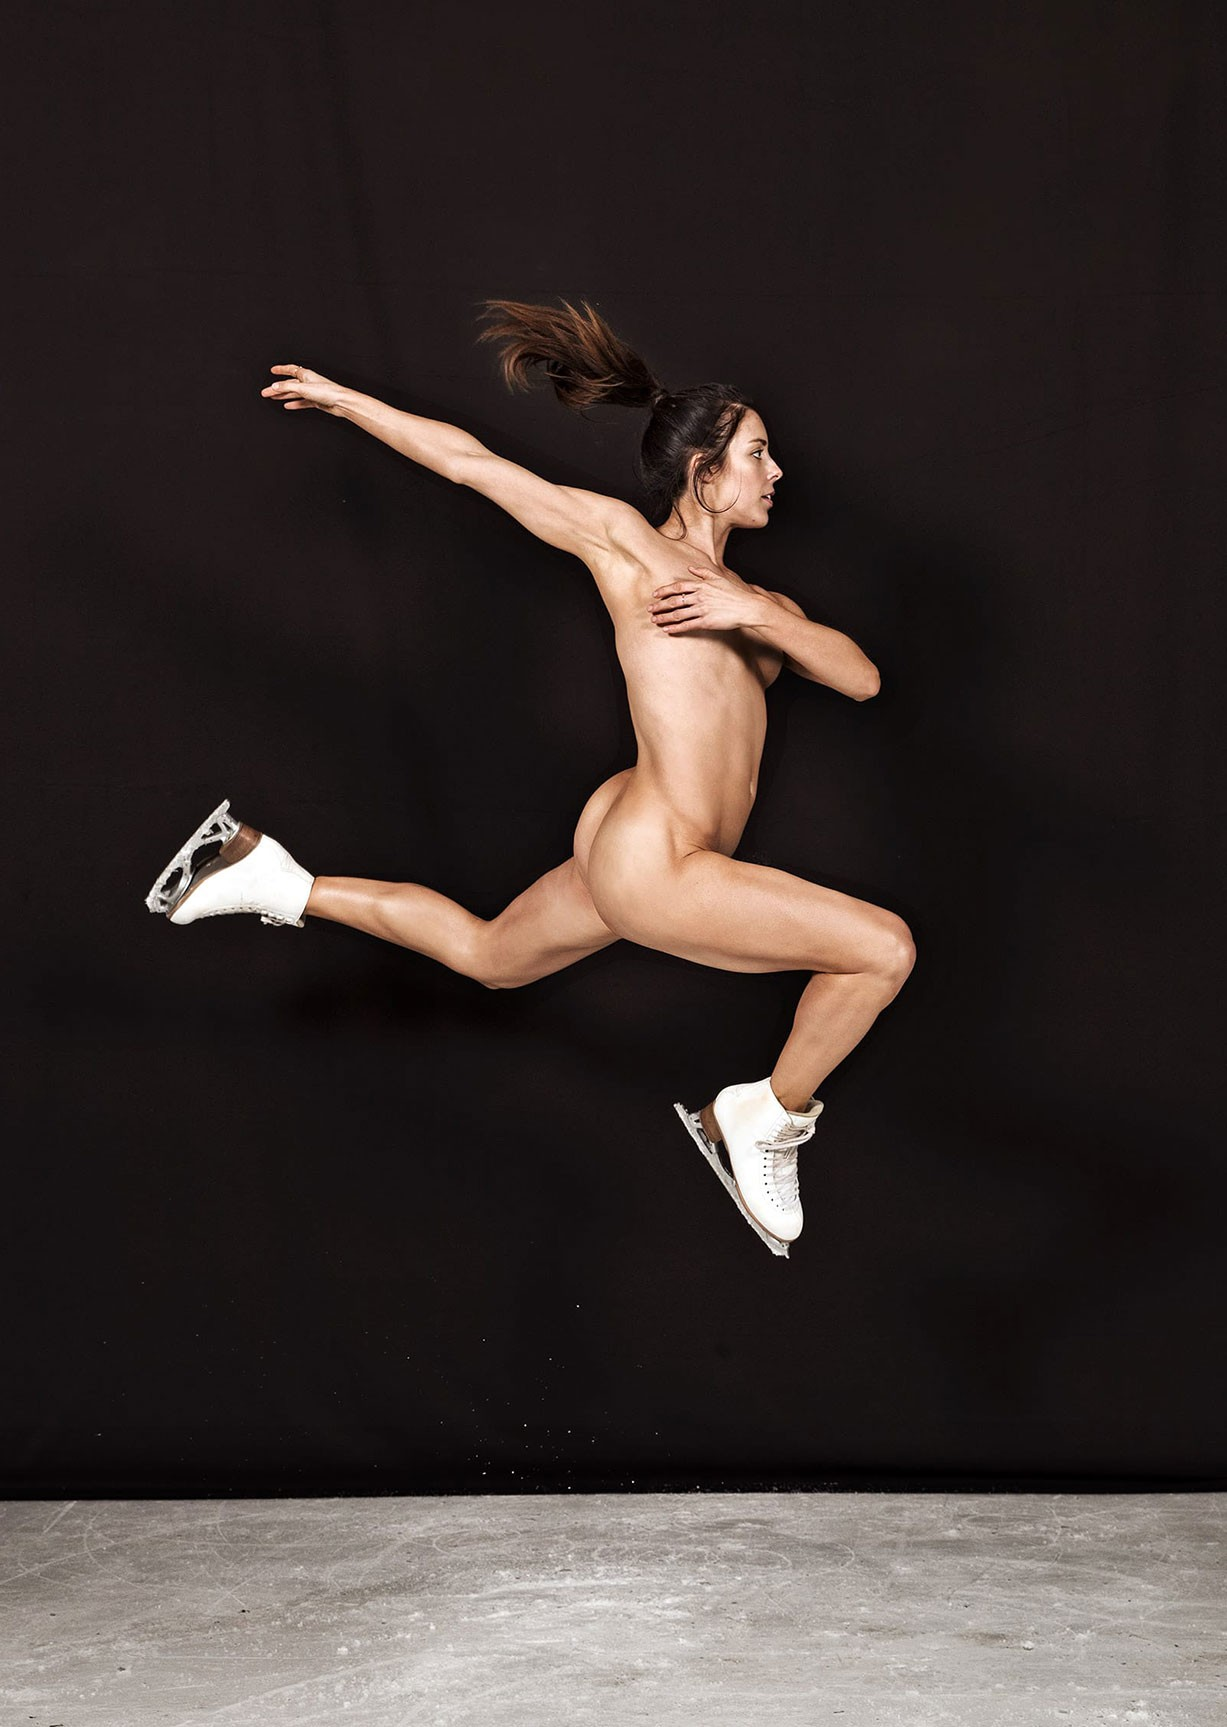 Ashley Wagner - ESPN The Body Issue 2017 / photo by Silja Magg